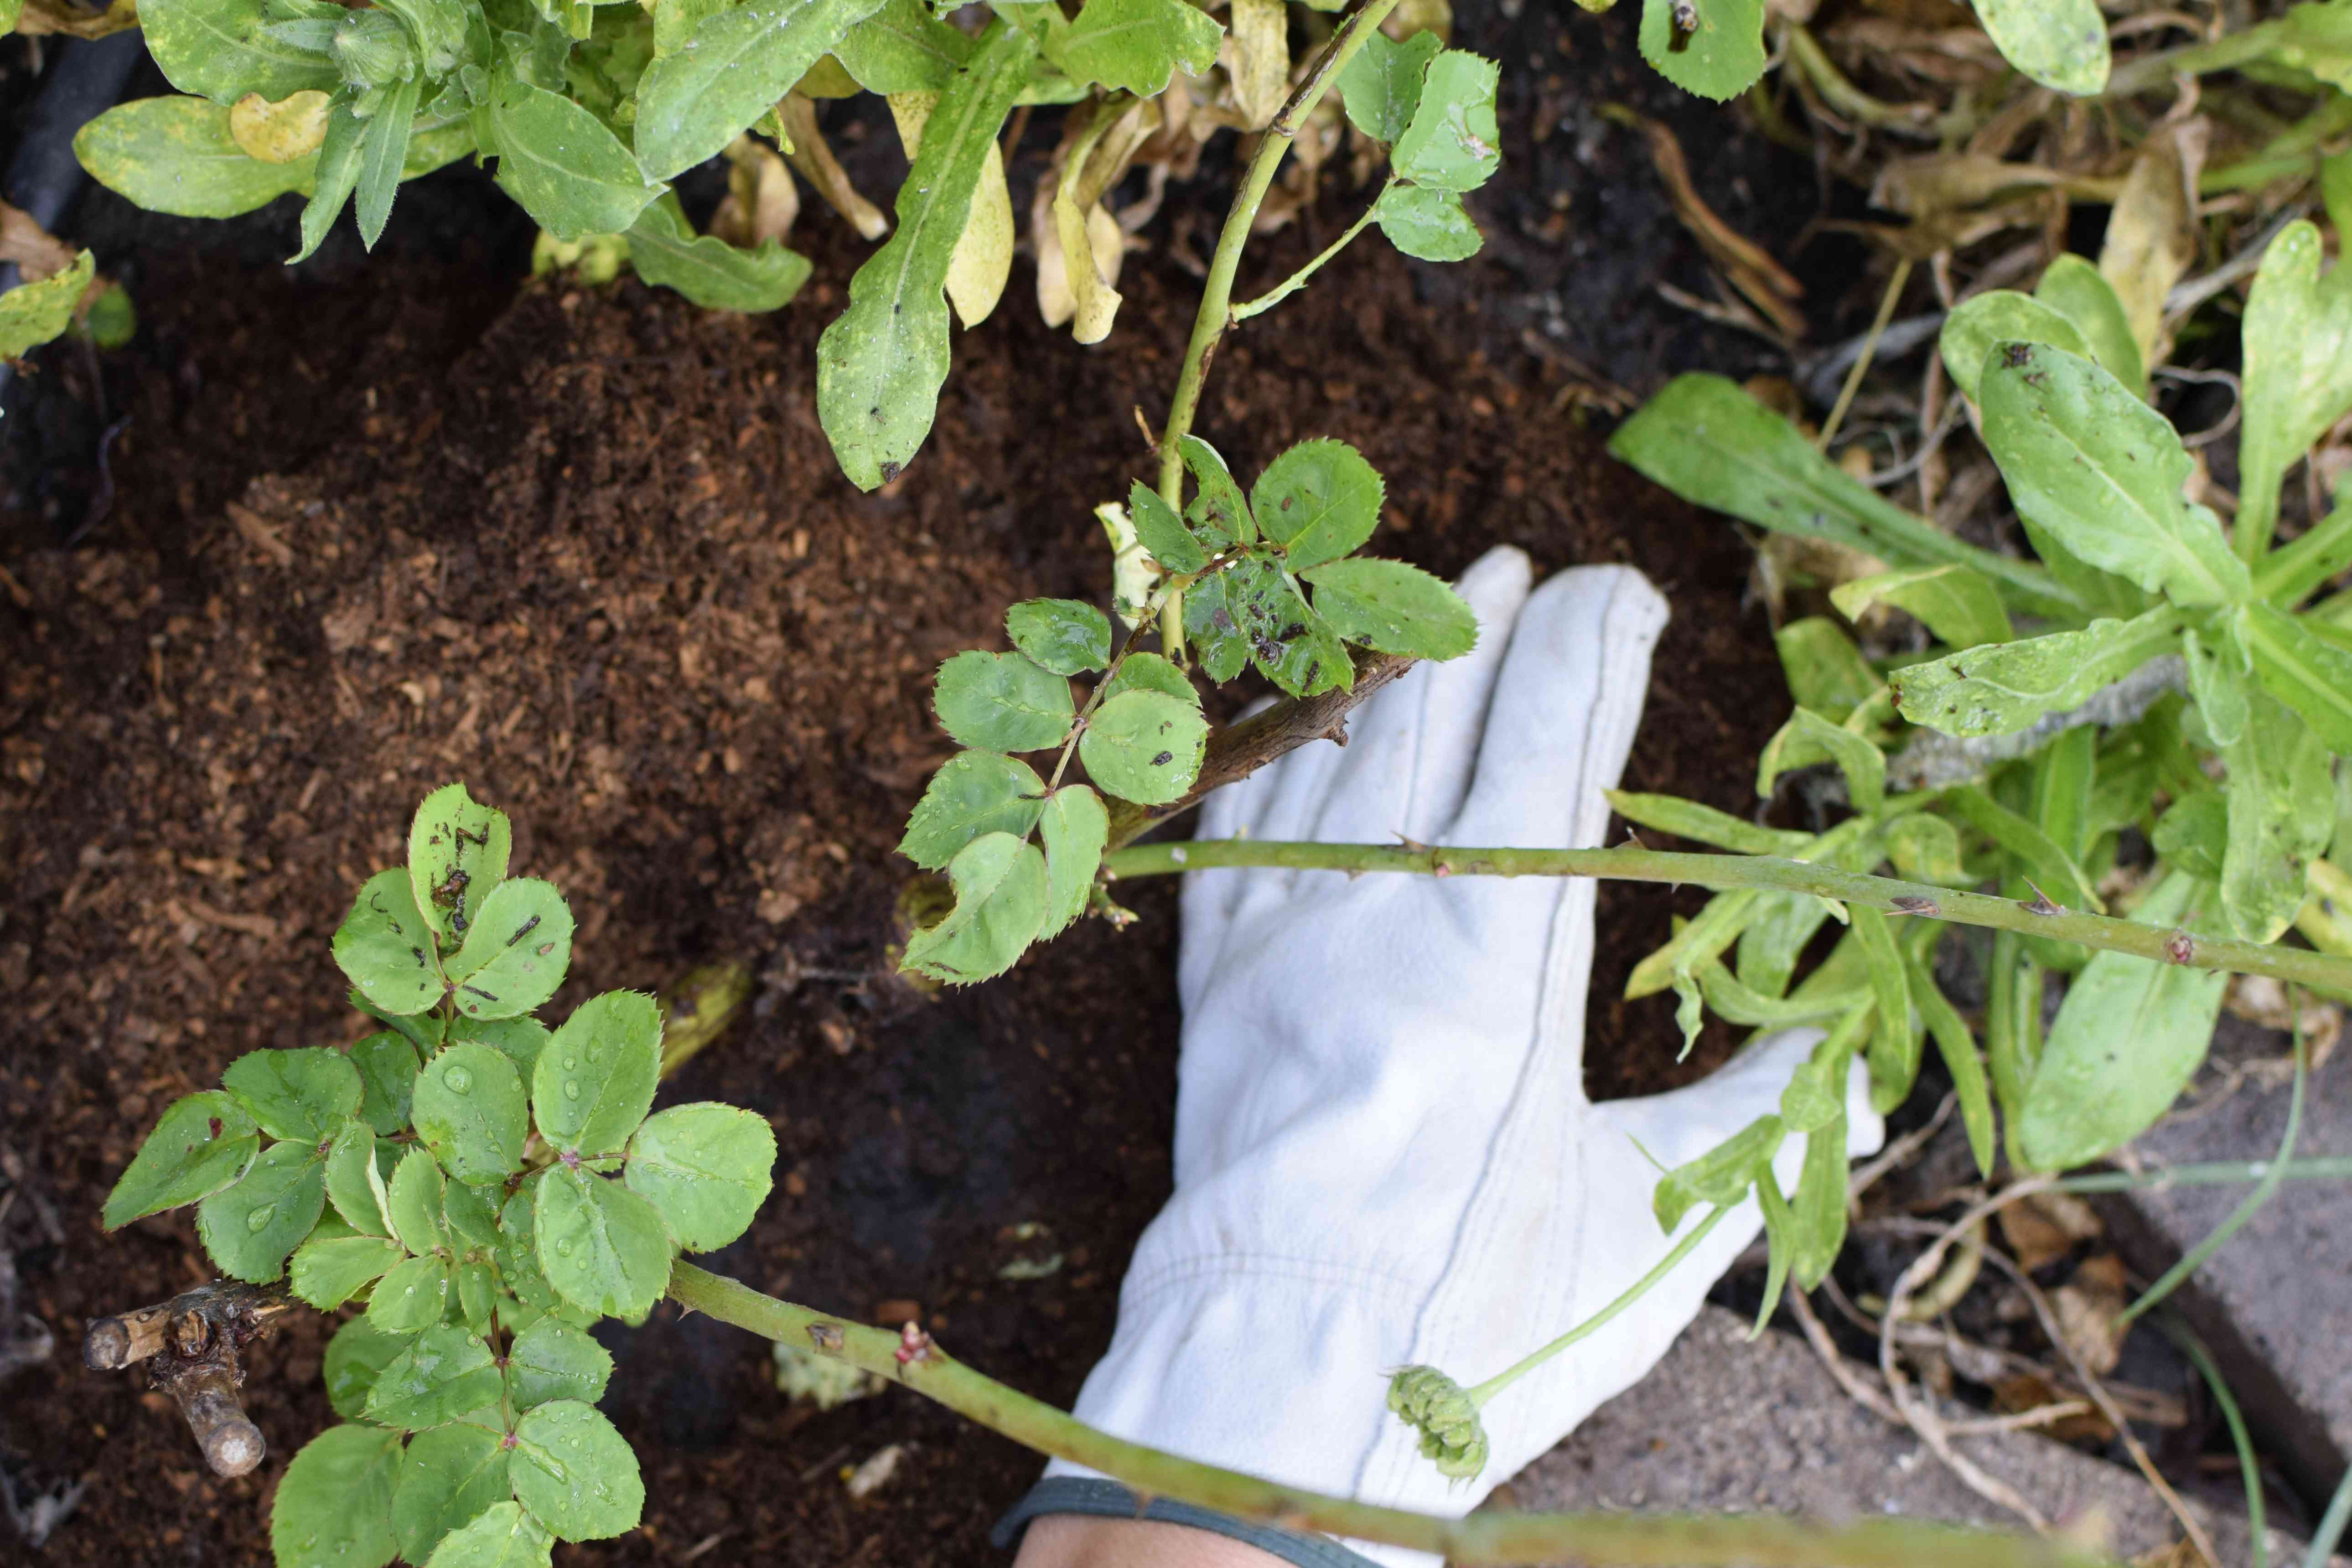 Protective mulch being removed from roses by hand